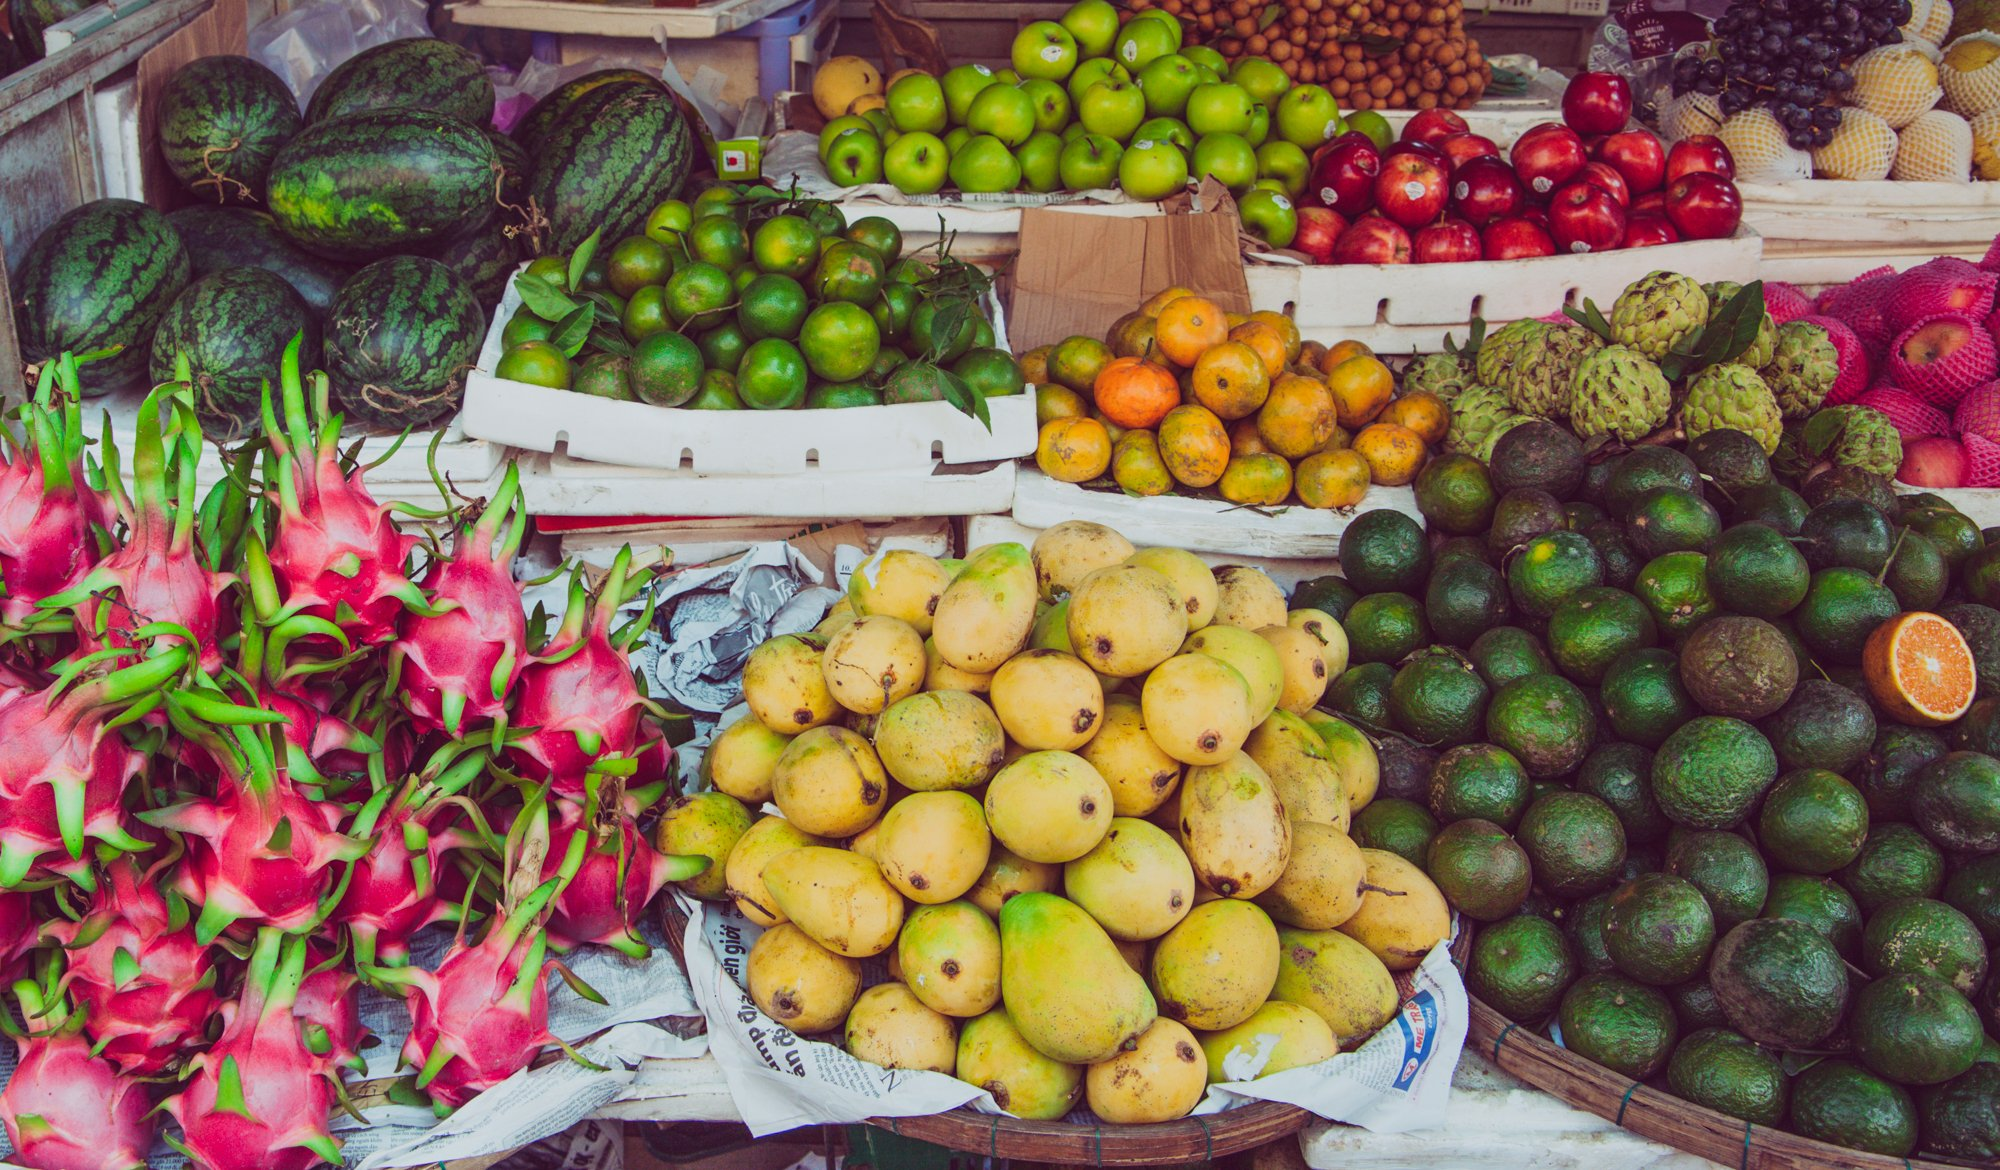 Browsing the Fruits and Vegetables at the local market is one of our favorite things to do in Da Nang